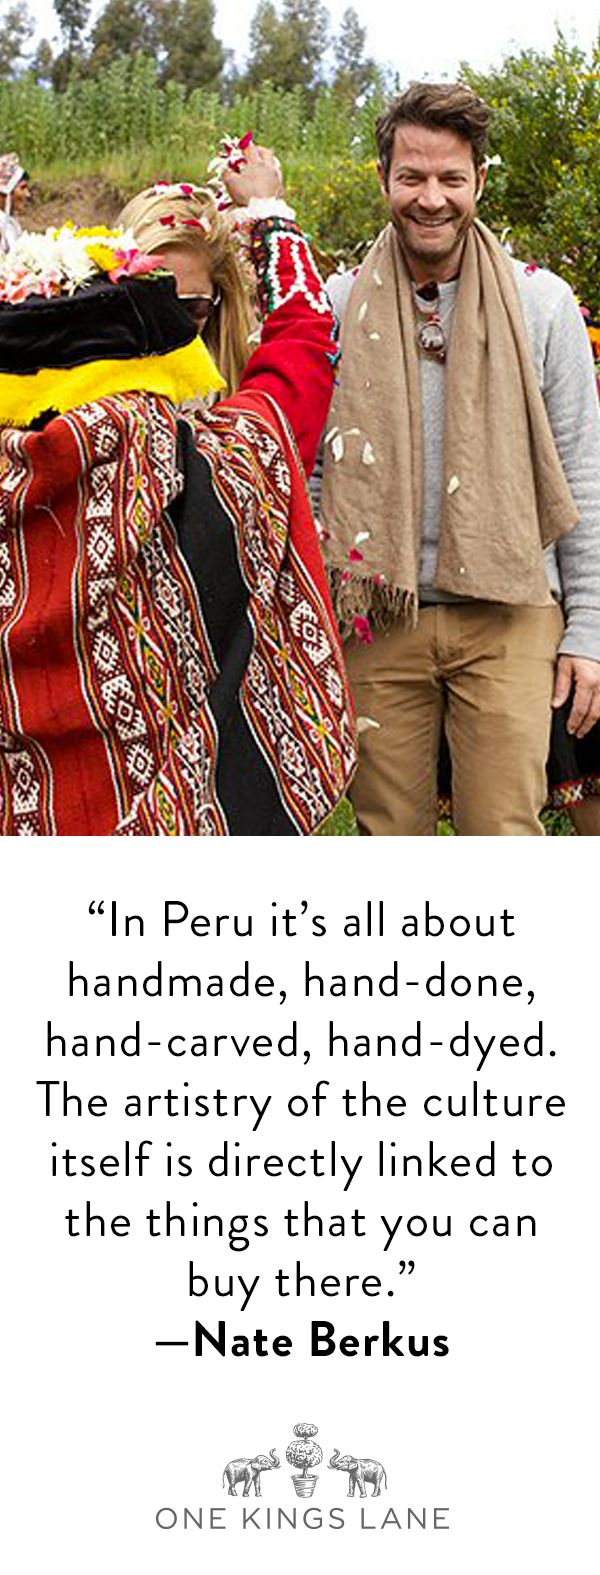 Follow Nate Berkus and Susan Feldman as they revel in the beauty of the Peruvian culture as seen through its handmade textiles and furniture. From the villages to the mountain tops, travel with One Kings Lane for a glimpse into the one-of-a-kind treasures they discovered.